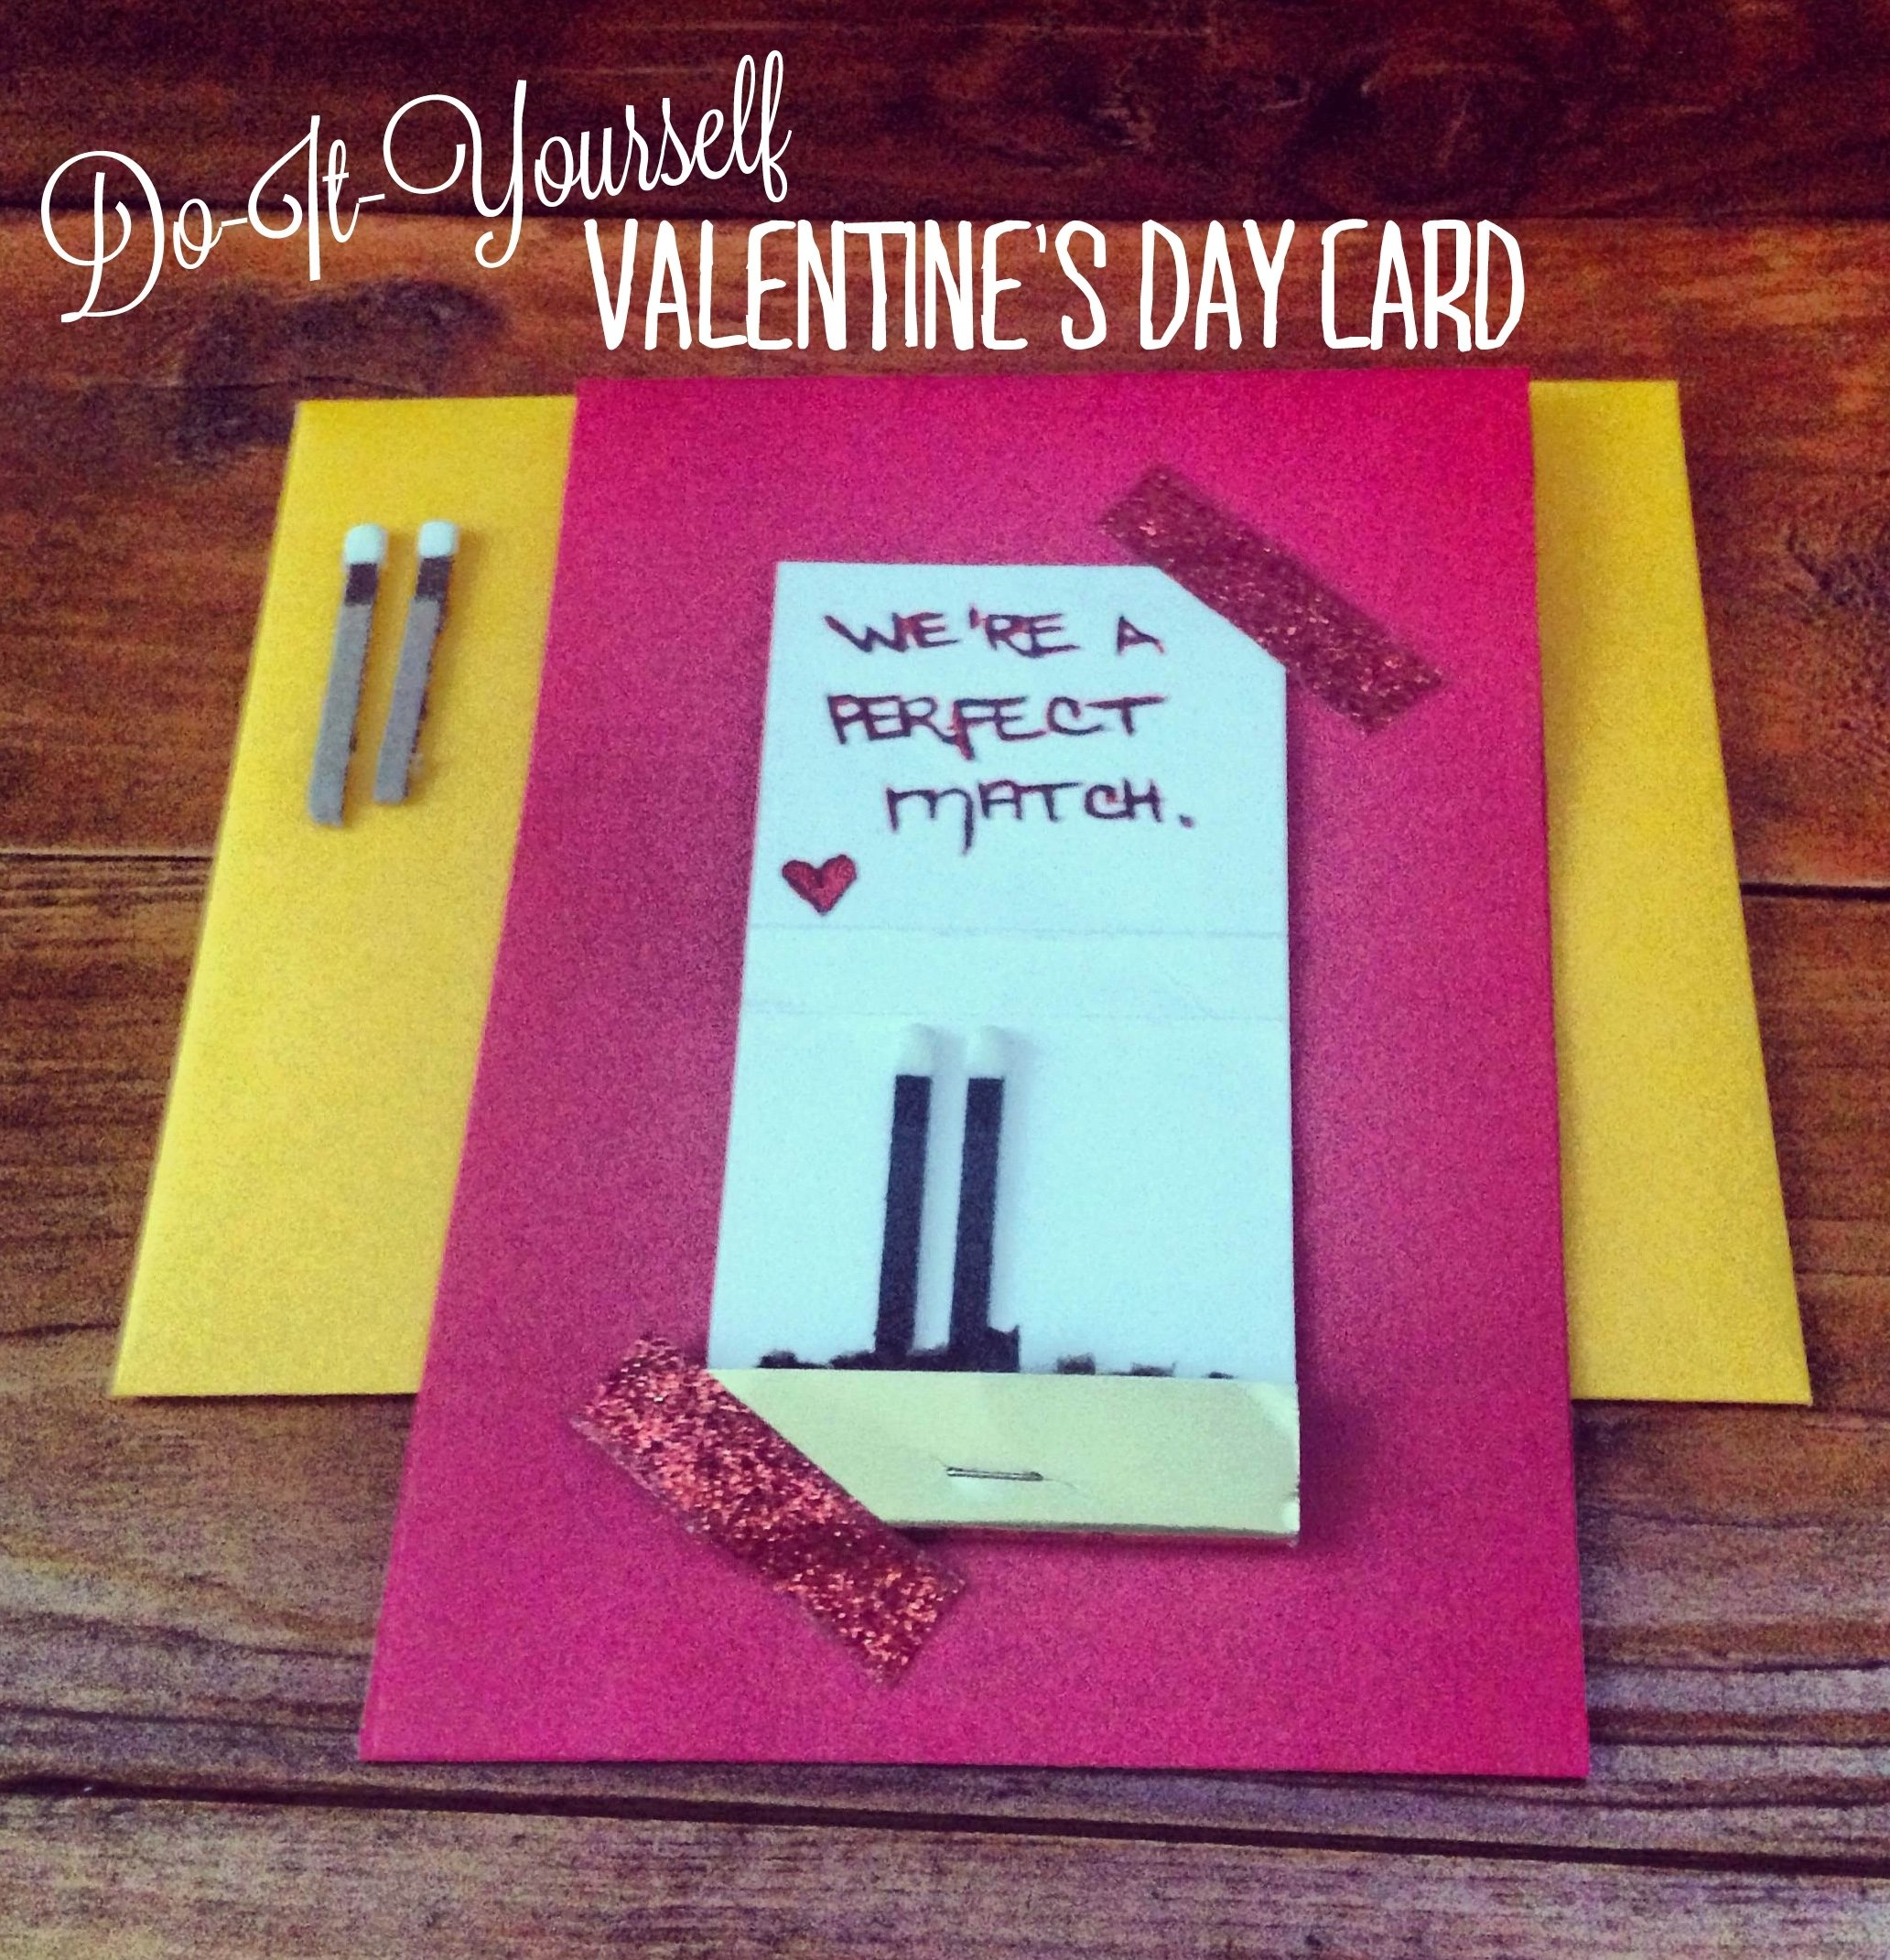 10 wonderful diy valentines day ideas for him 10 wonderful diy valentines day ideas for him diy valentines day card bepaperie 1 solutioingenieria Gallery